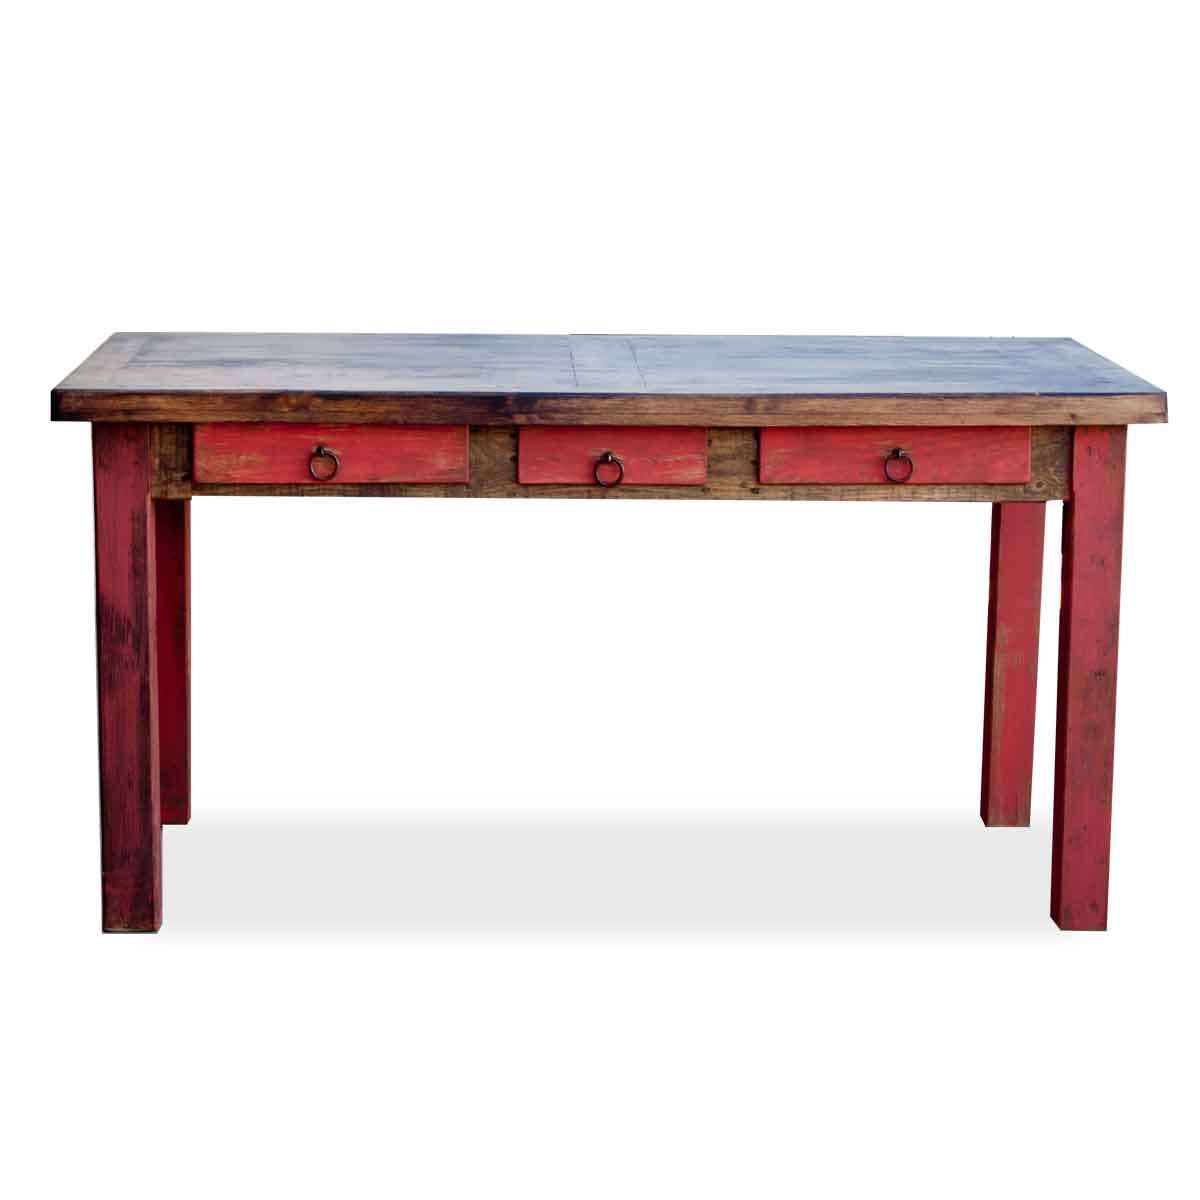 Order Beautiful Red Rustic Desk With 3 Drawers And Wooden